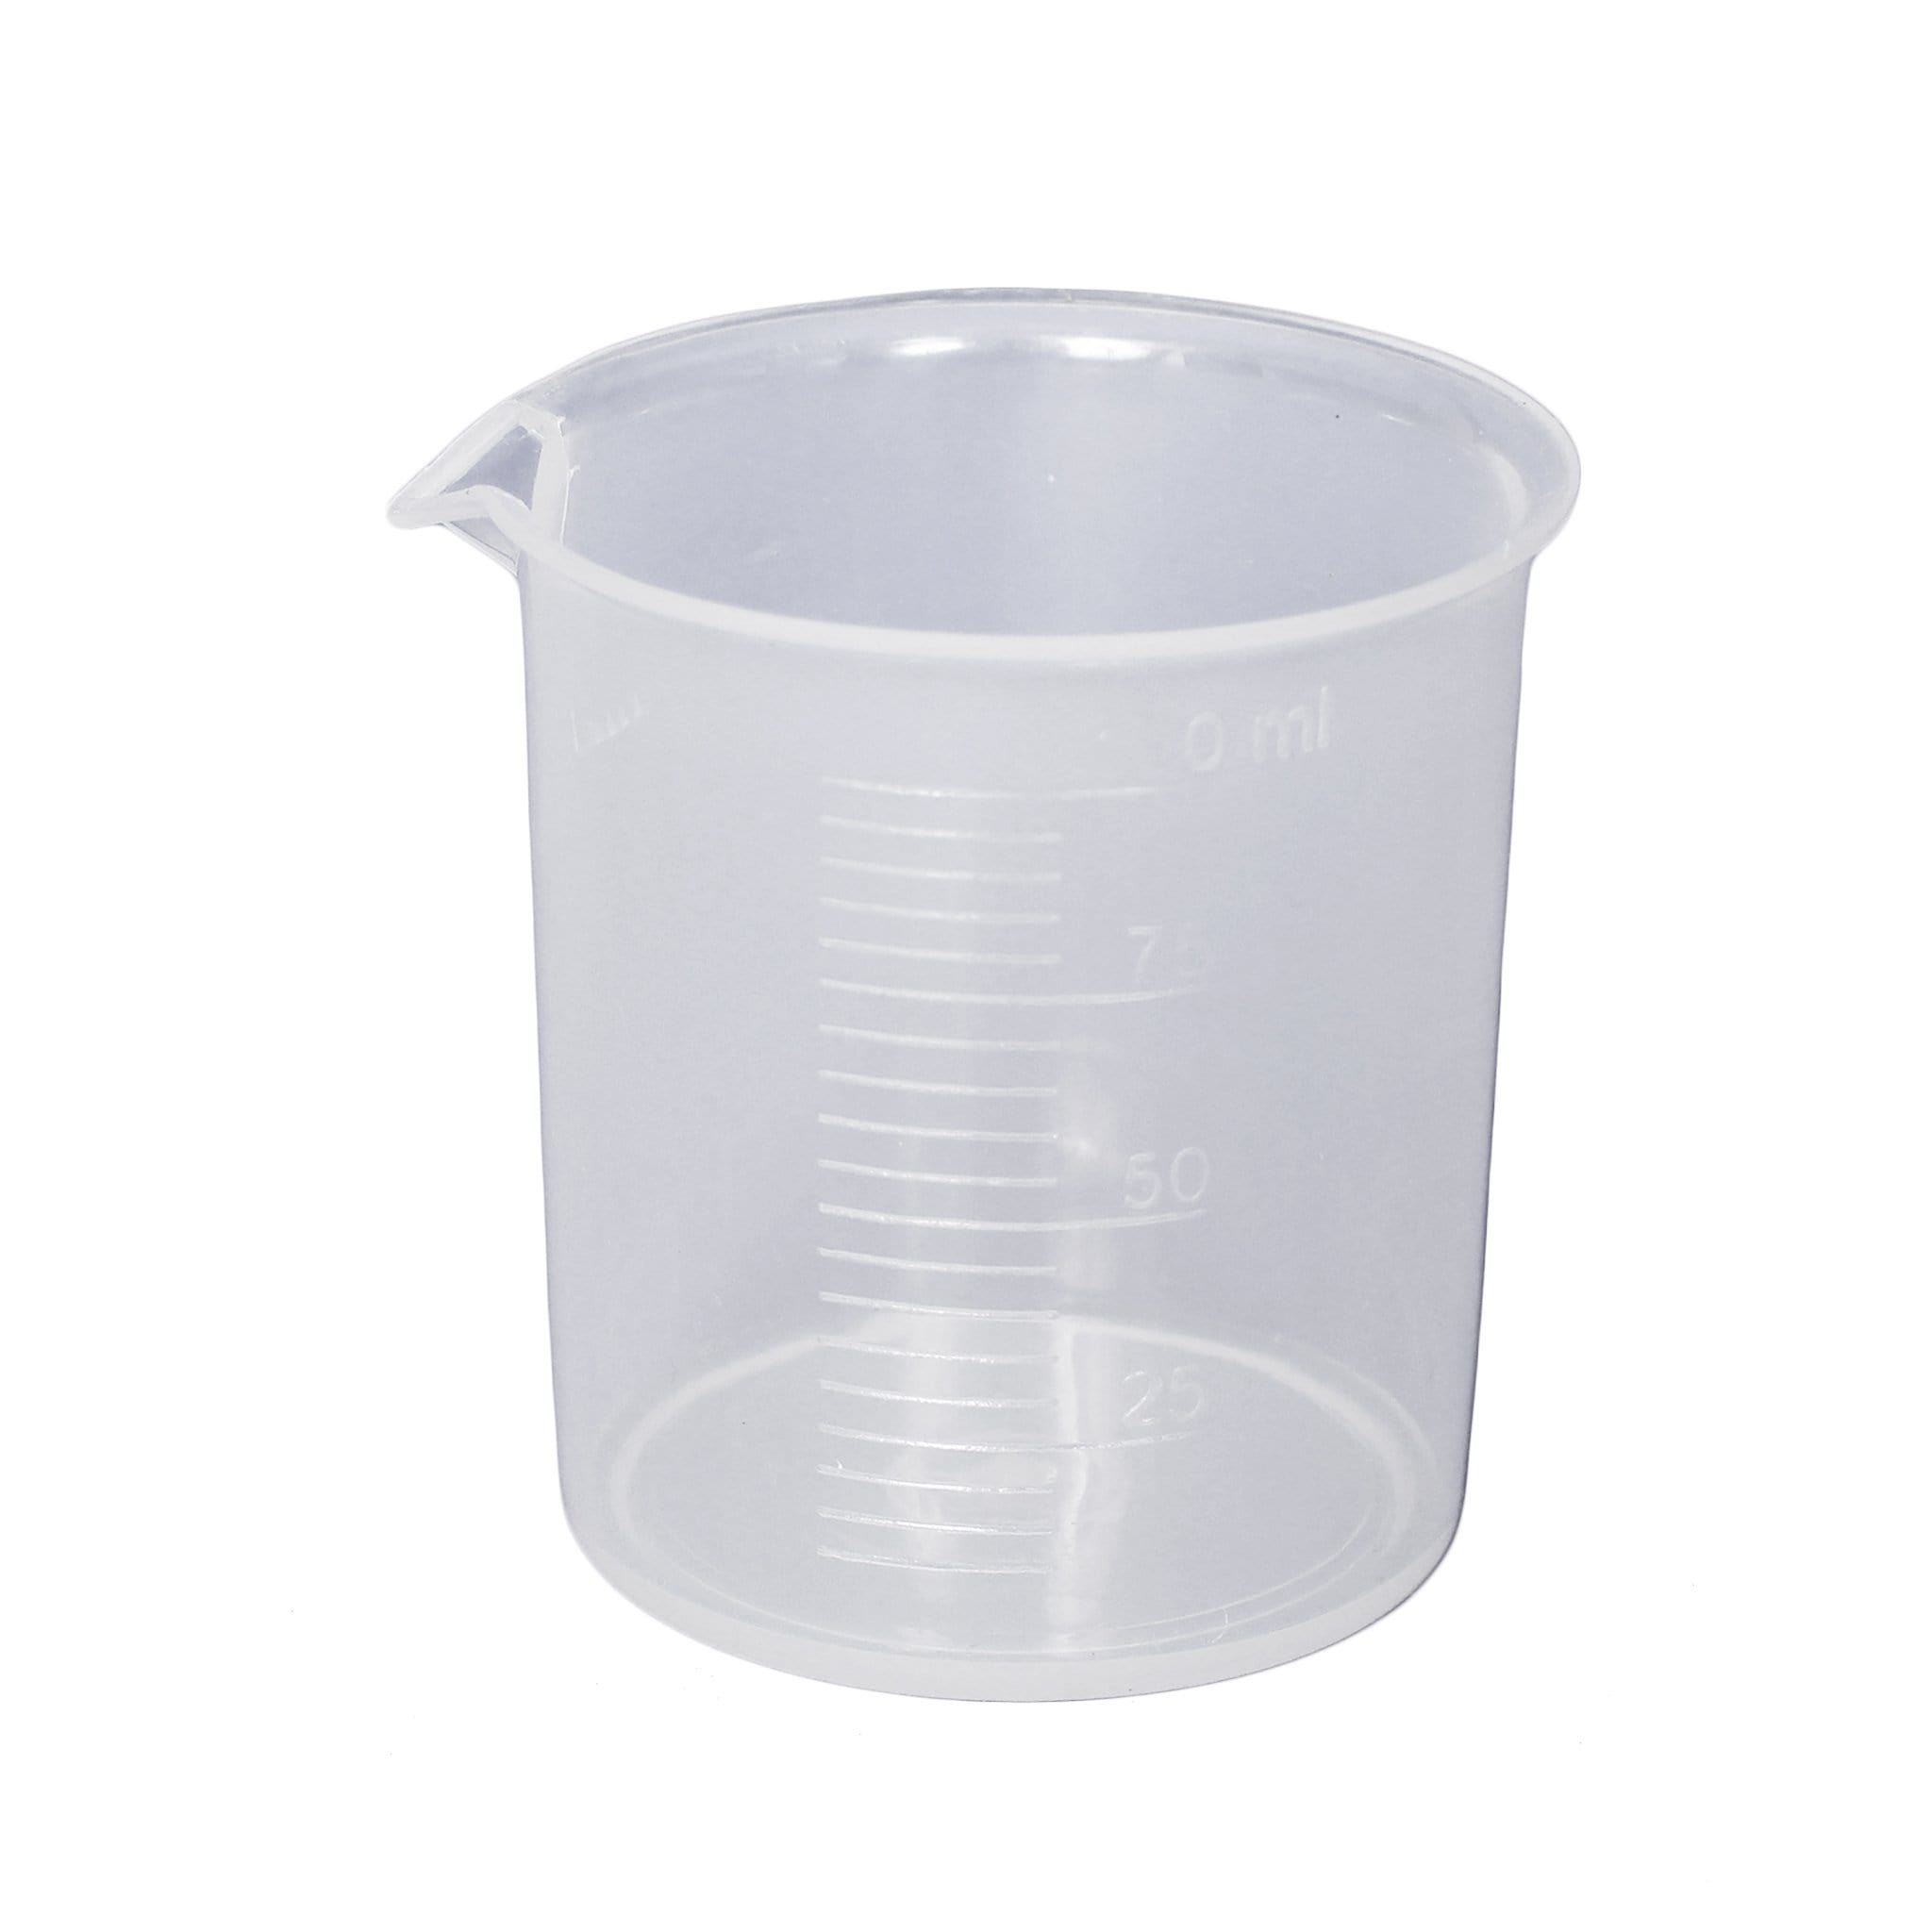 100ml Polypropylene Beaker